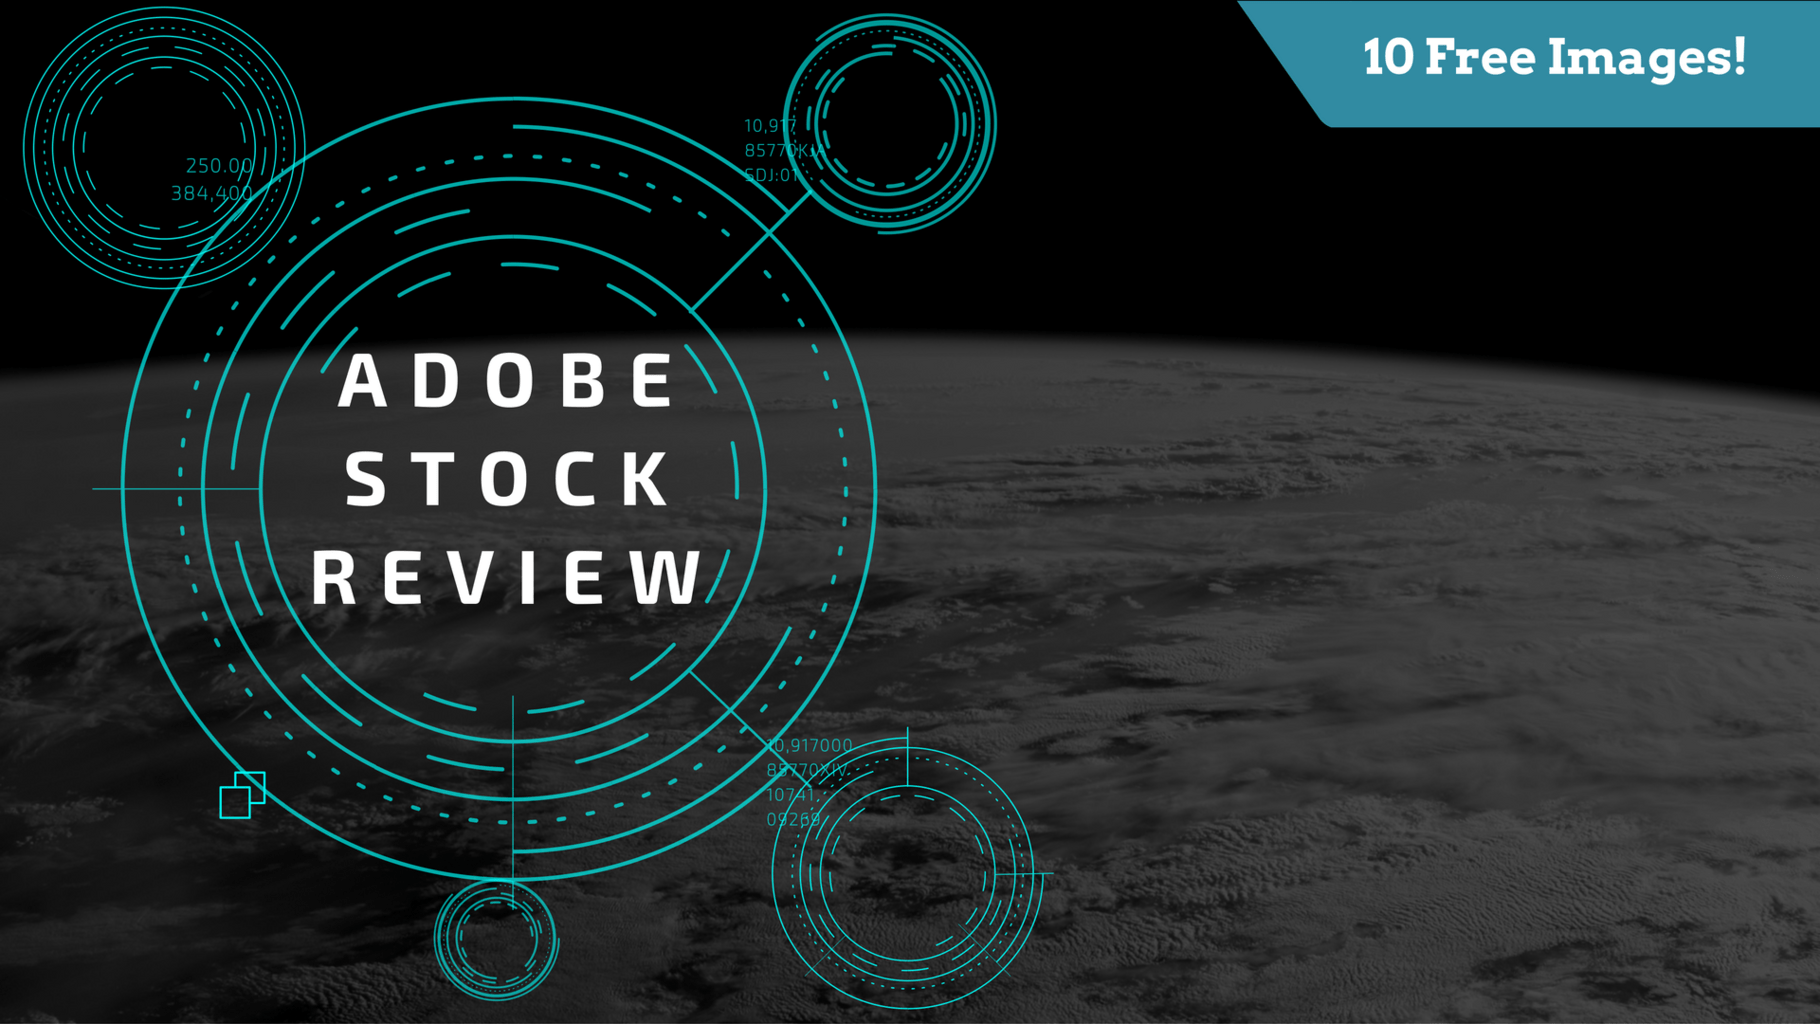 adobe stock images review download 10 free photos